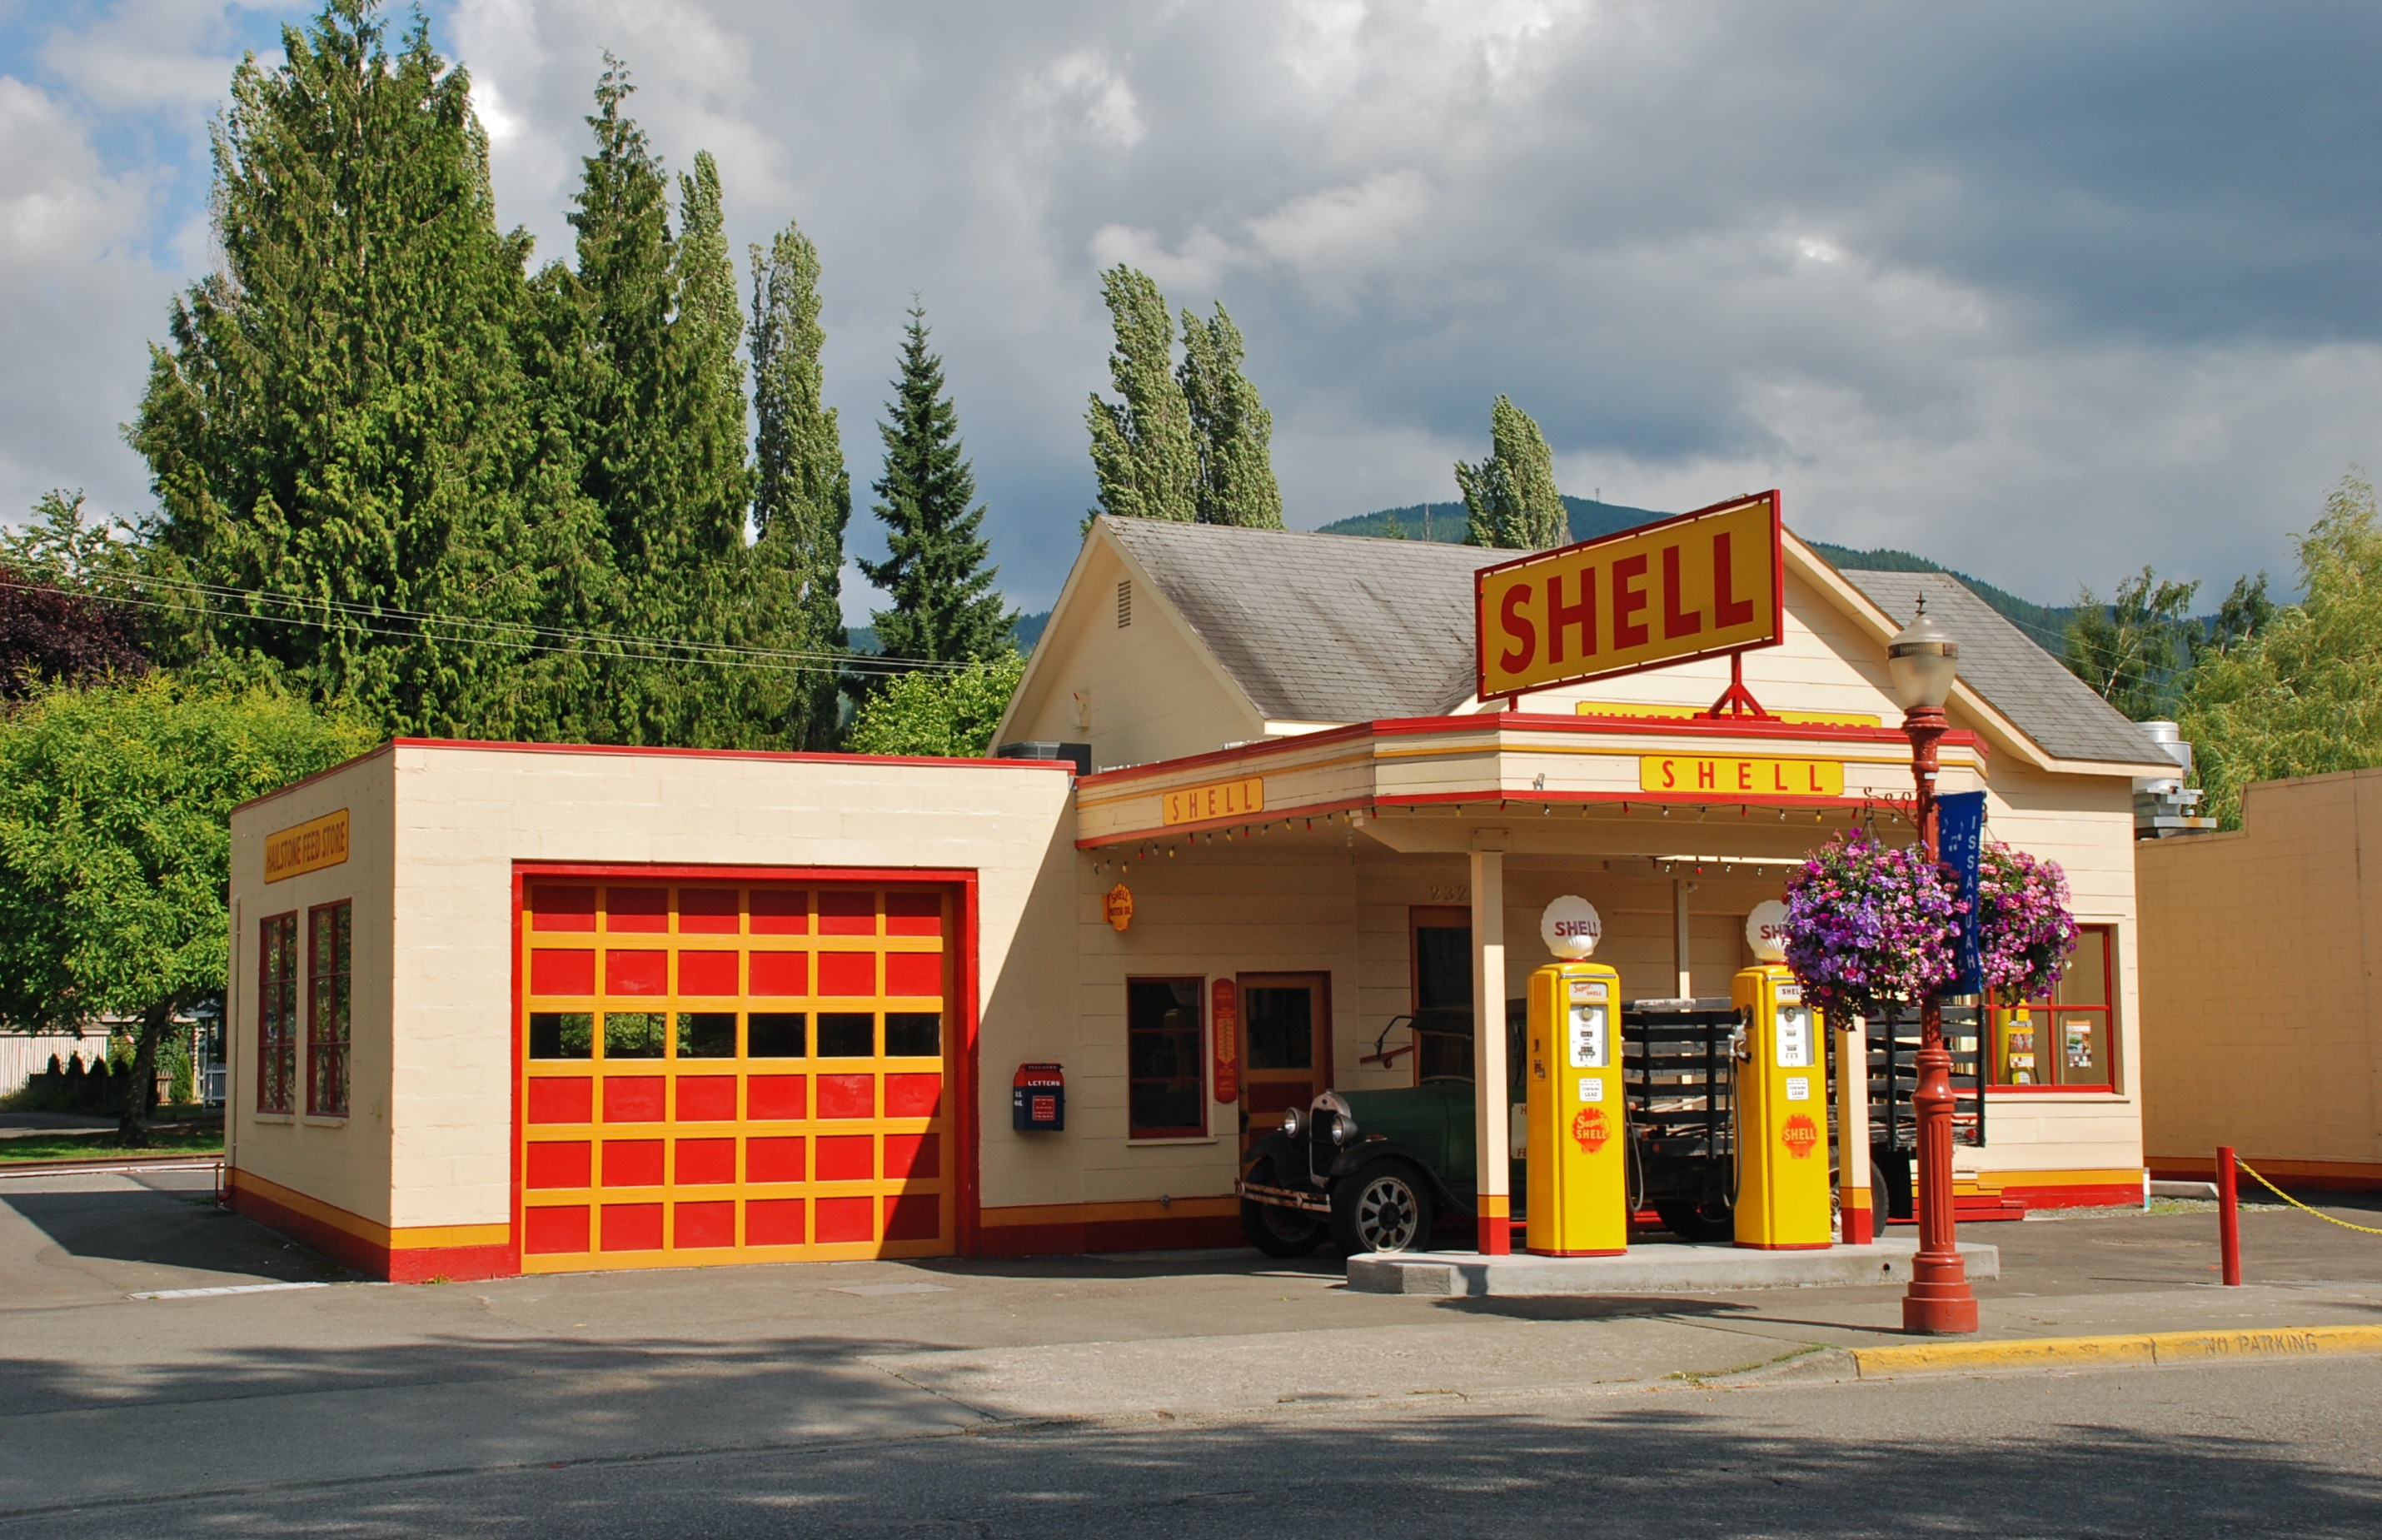 1940s shell gas station in issaquah washington